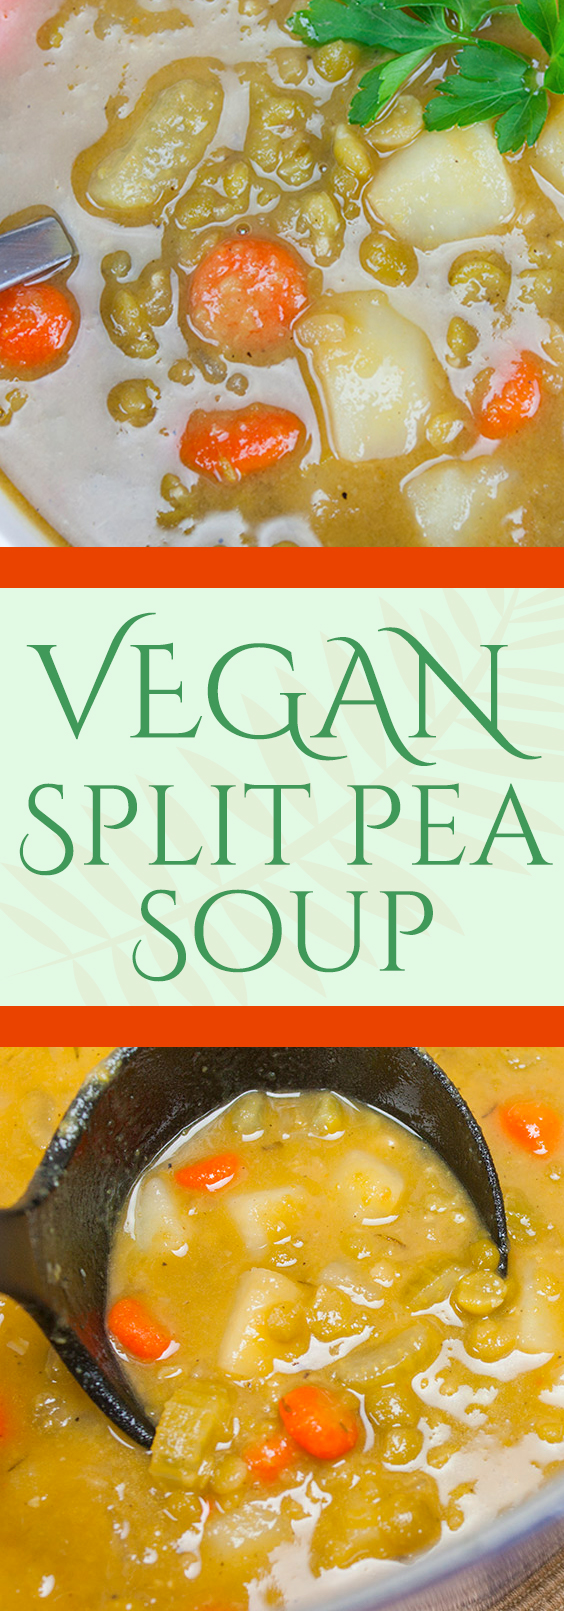 Vegan Split Pea Soup - Simple, hearty and so flavorful. You will never know it's vegan!